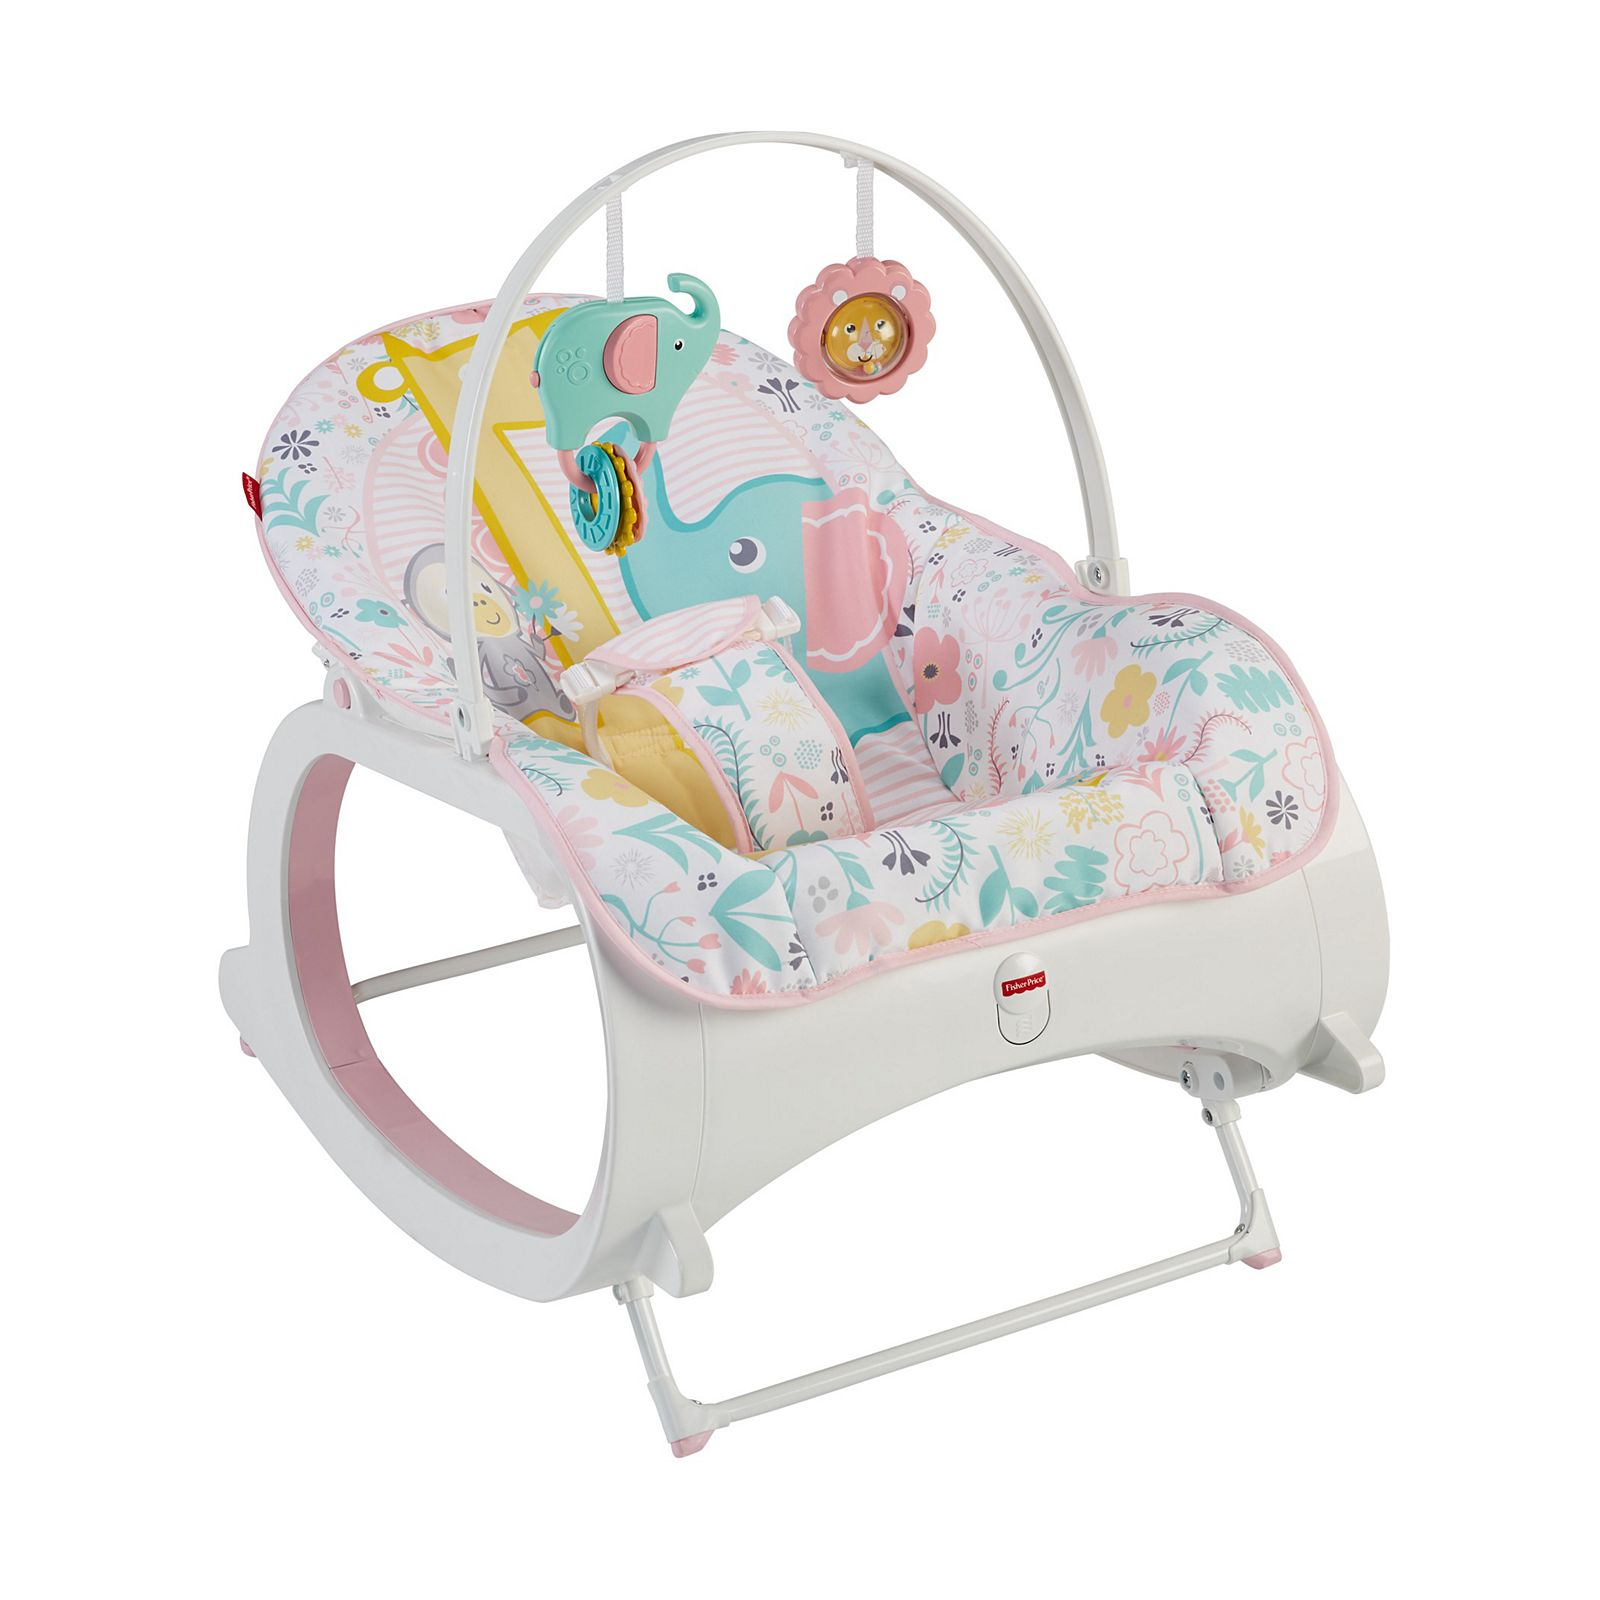 5b18c9a62d0 Infant-to-Toddler Rocker